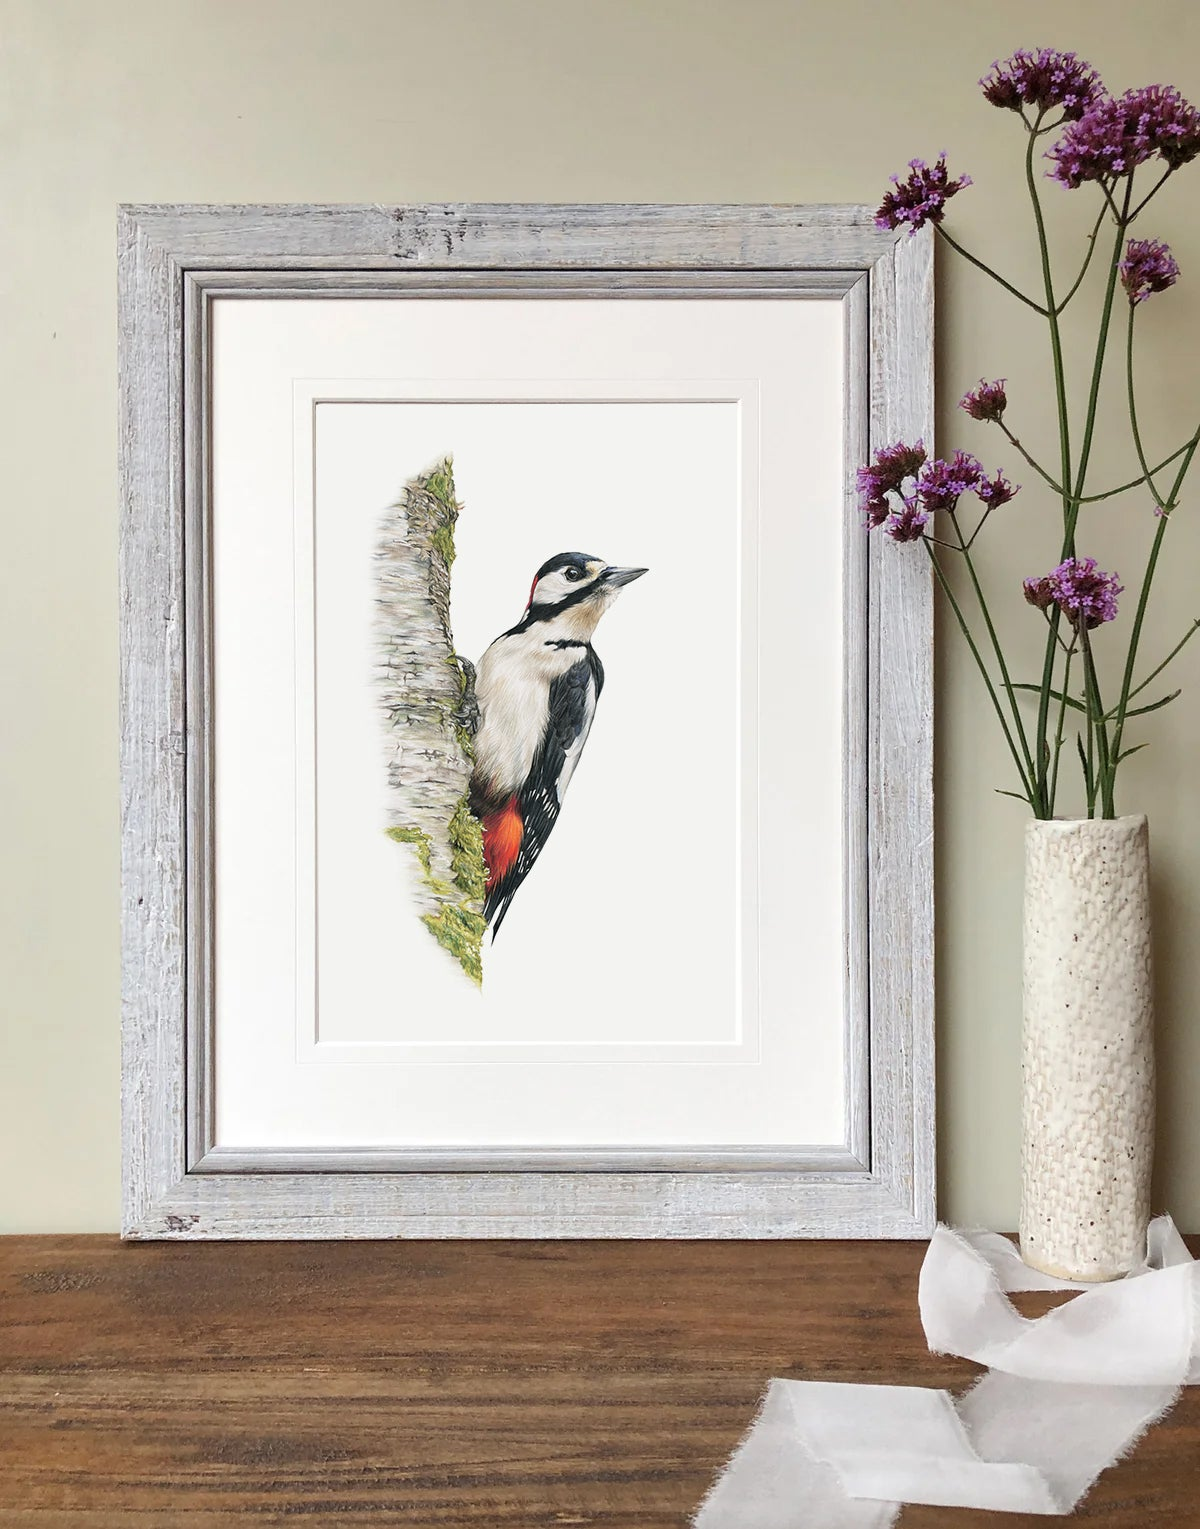 Image of 'Great Spotted Woodpecker' Limited Edition Print